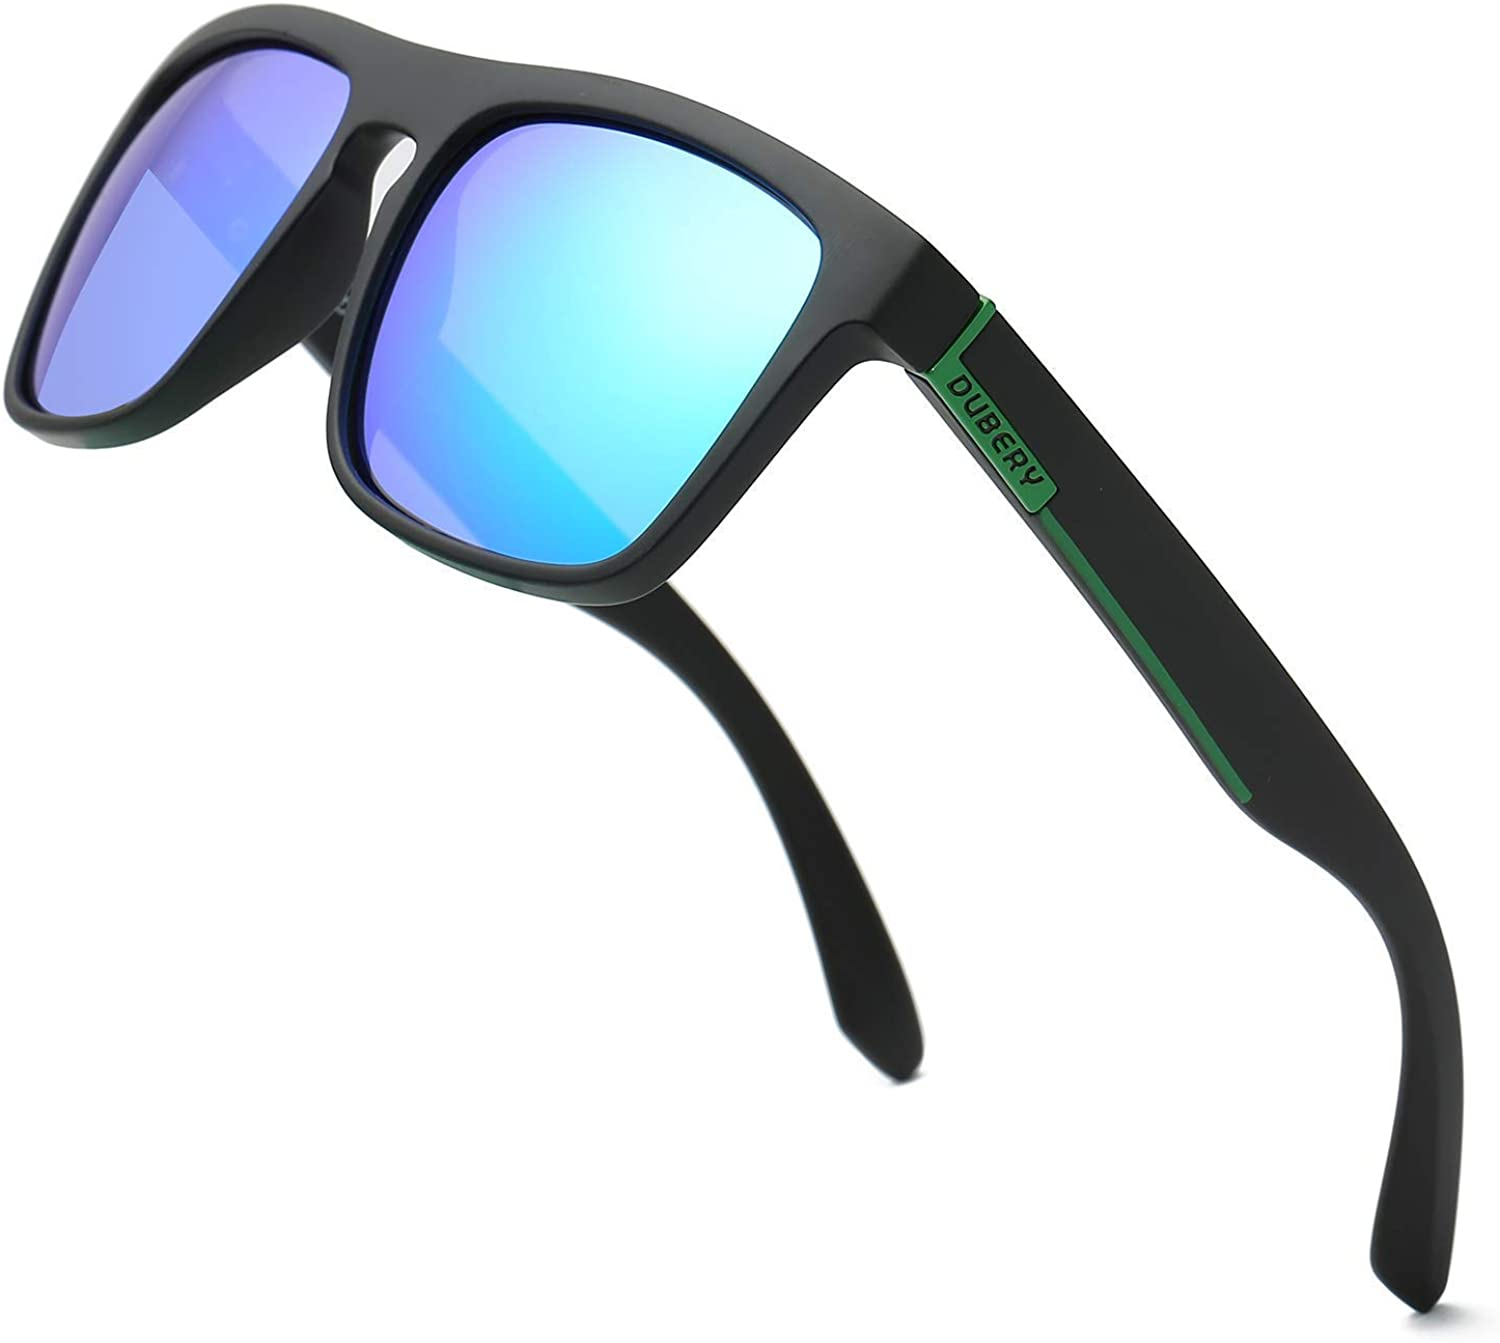 Free shipping anywhere in the nation DUBERY Classic Polarized Sunglasses for Popular shop is the lowest price challenge 100% WomenMen UV Protec